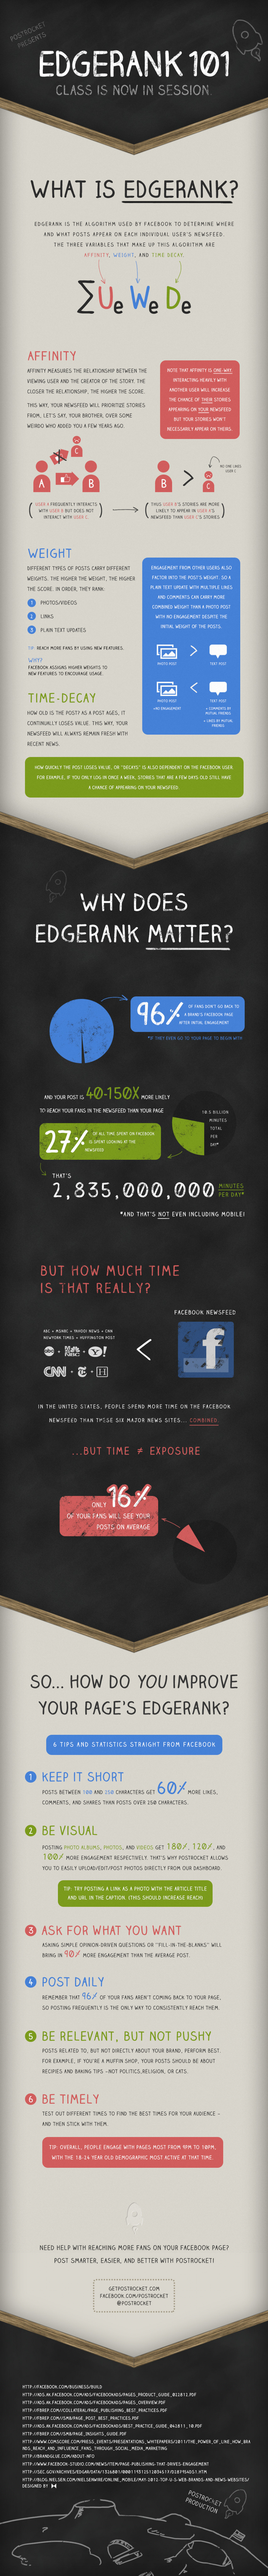 Facebook EdgeRank 101 Infographic